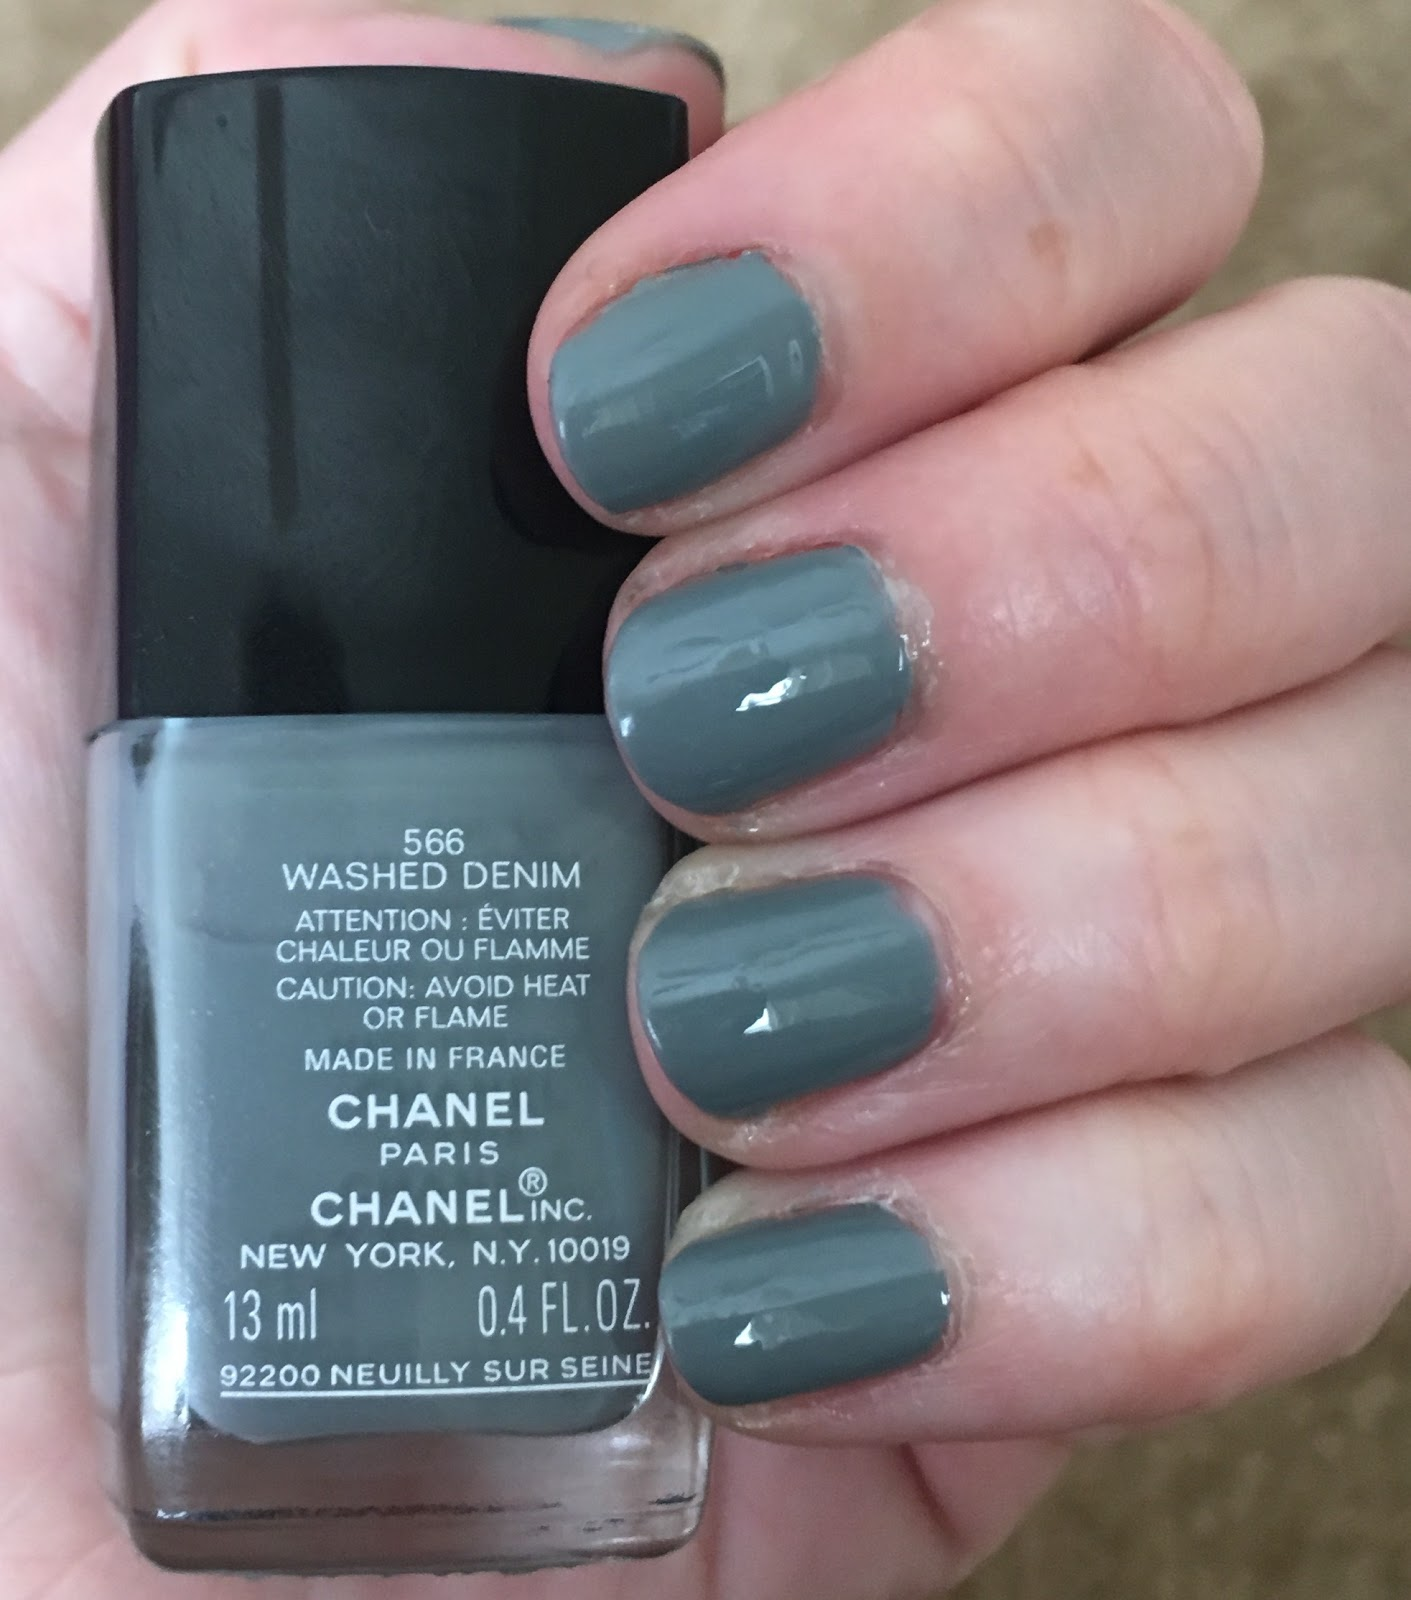 The Beauty of Life: #ManiMonday: Chanel Le Vernis in Washed Denim